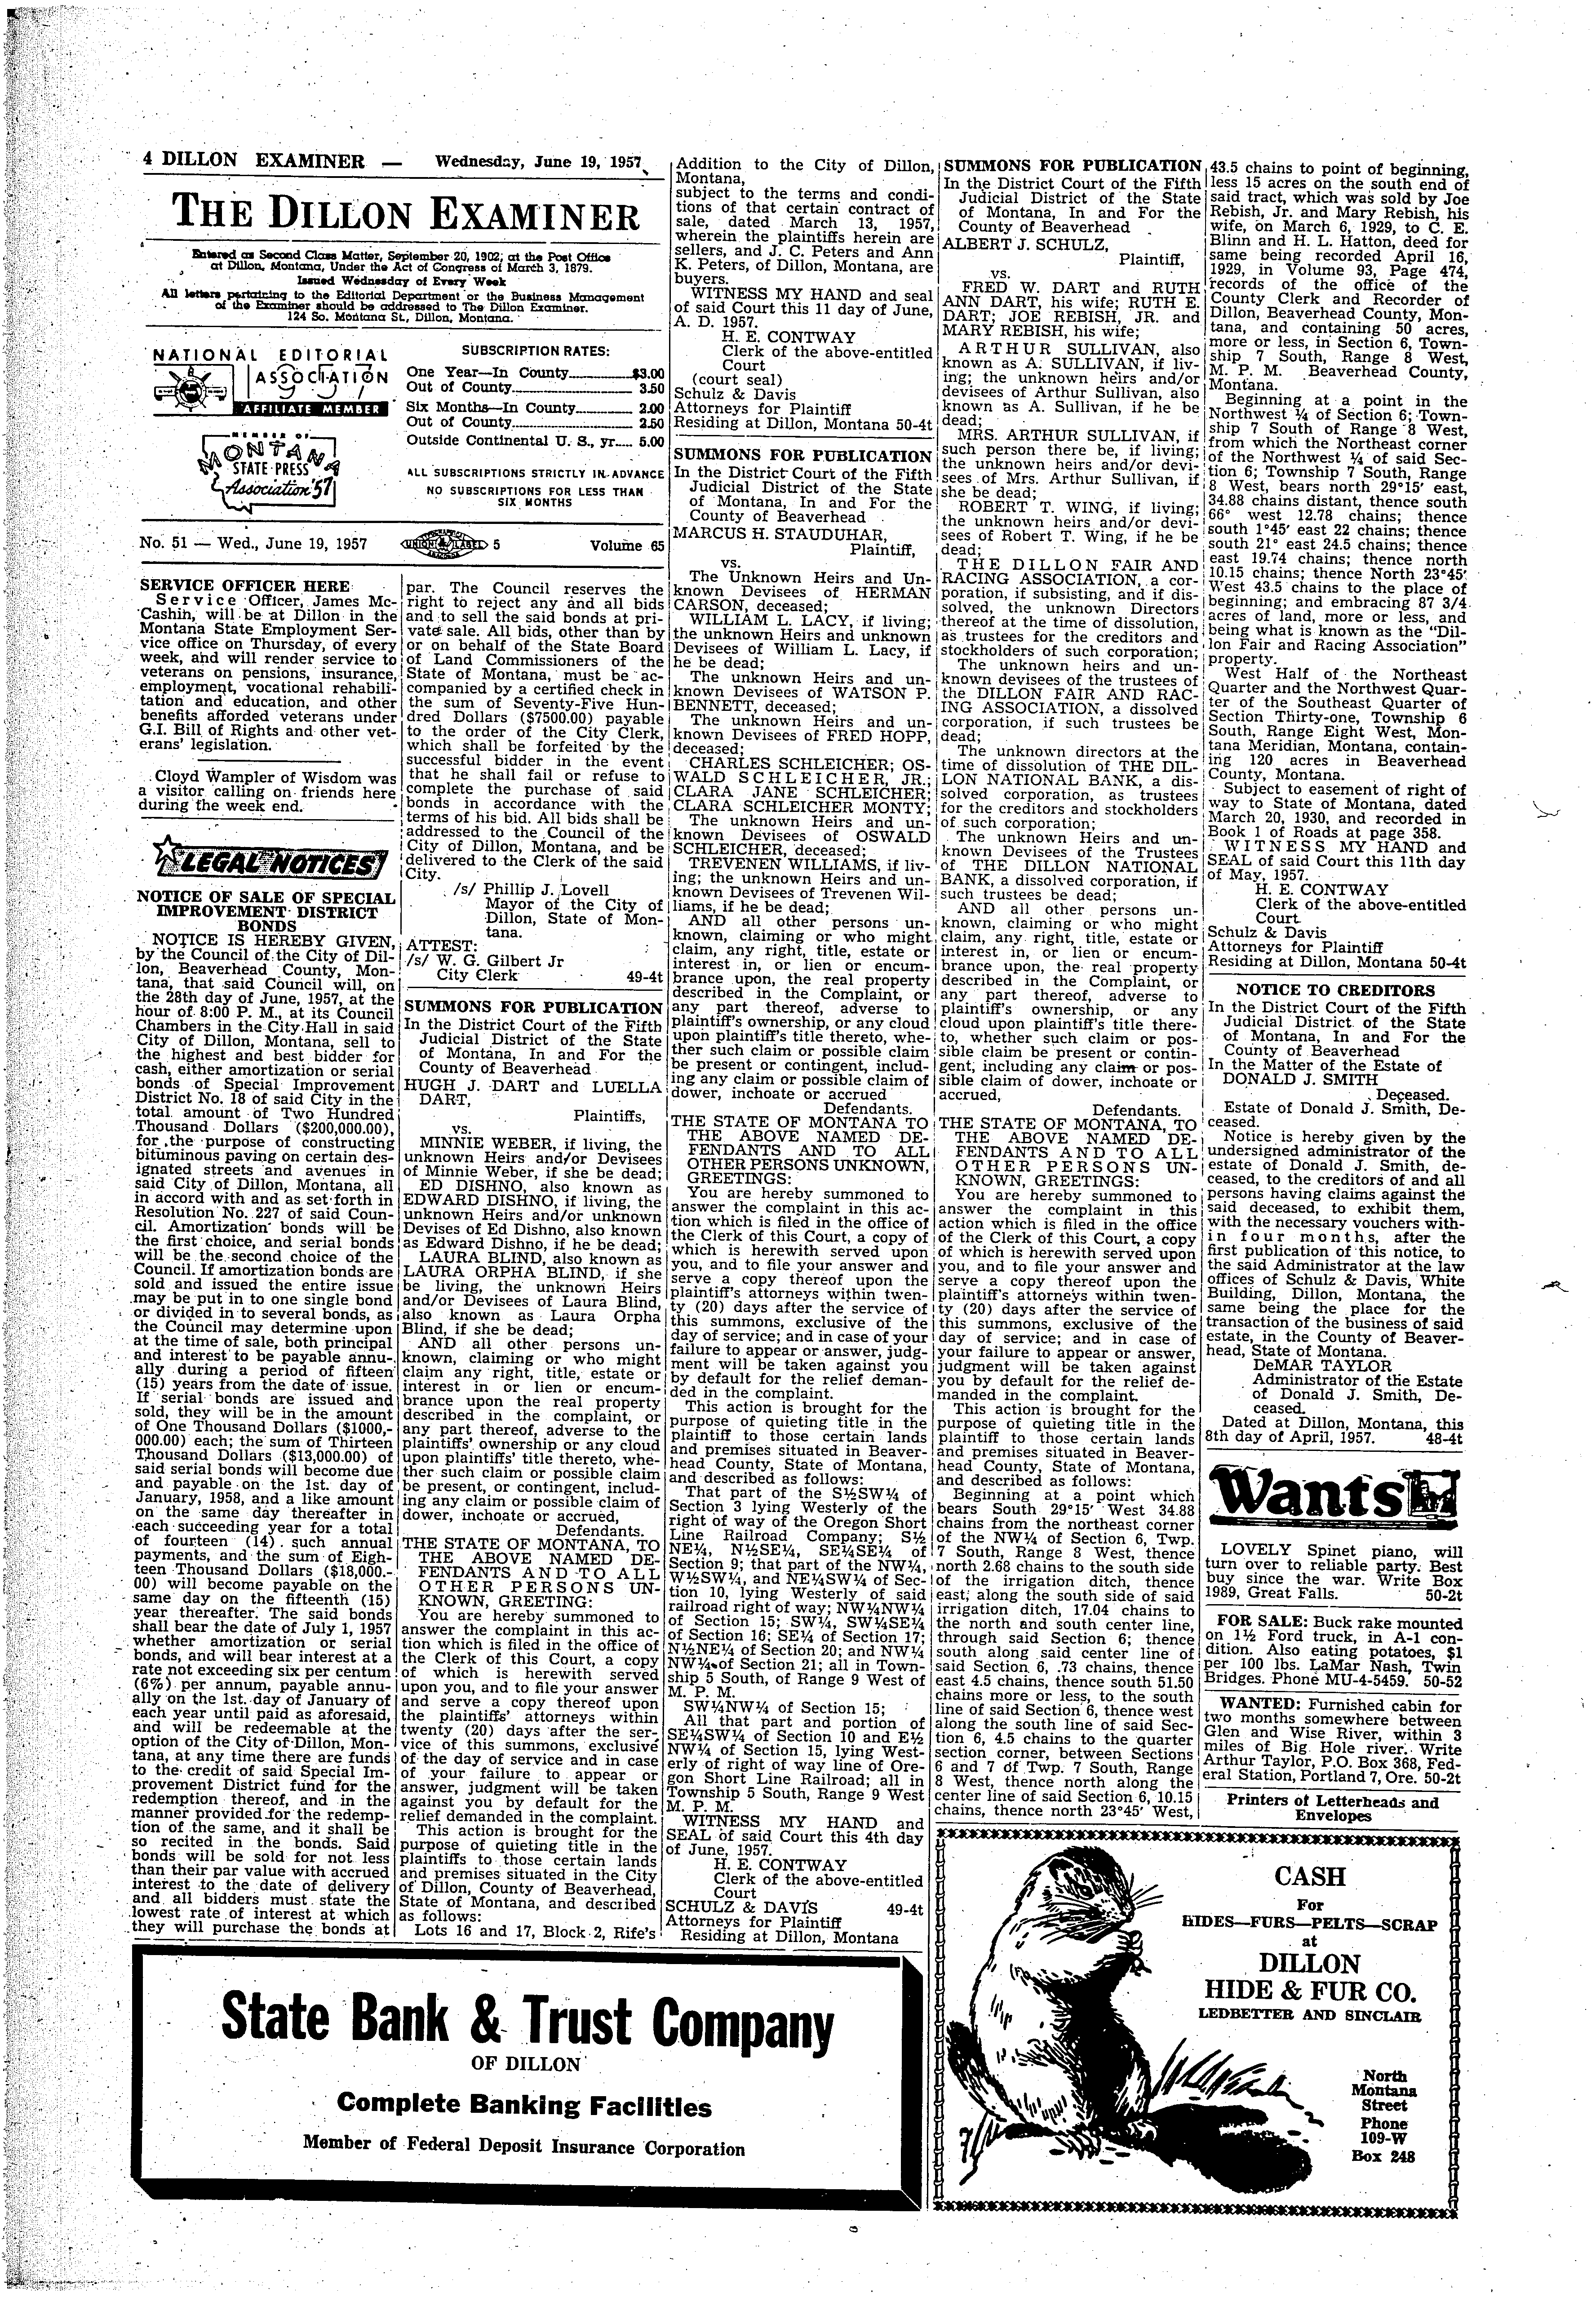 The Dillon Examiner (Dillon, Mont.) 1891-1962, June 19, 1957, Page on